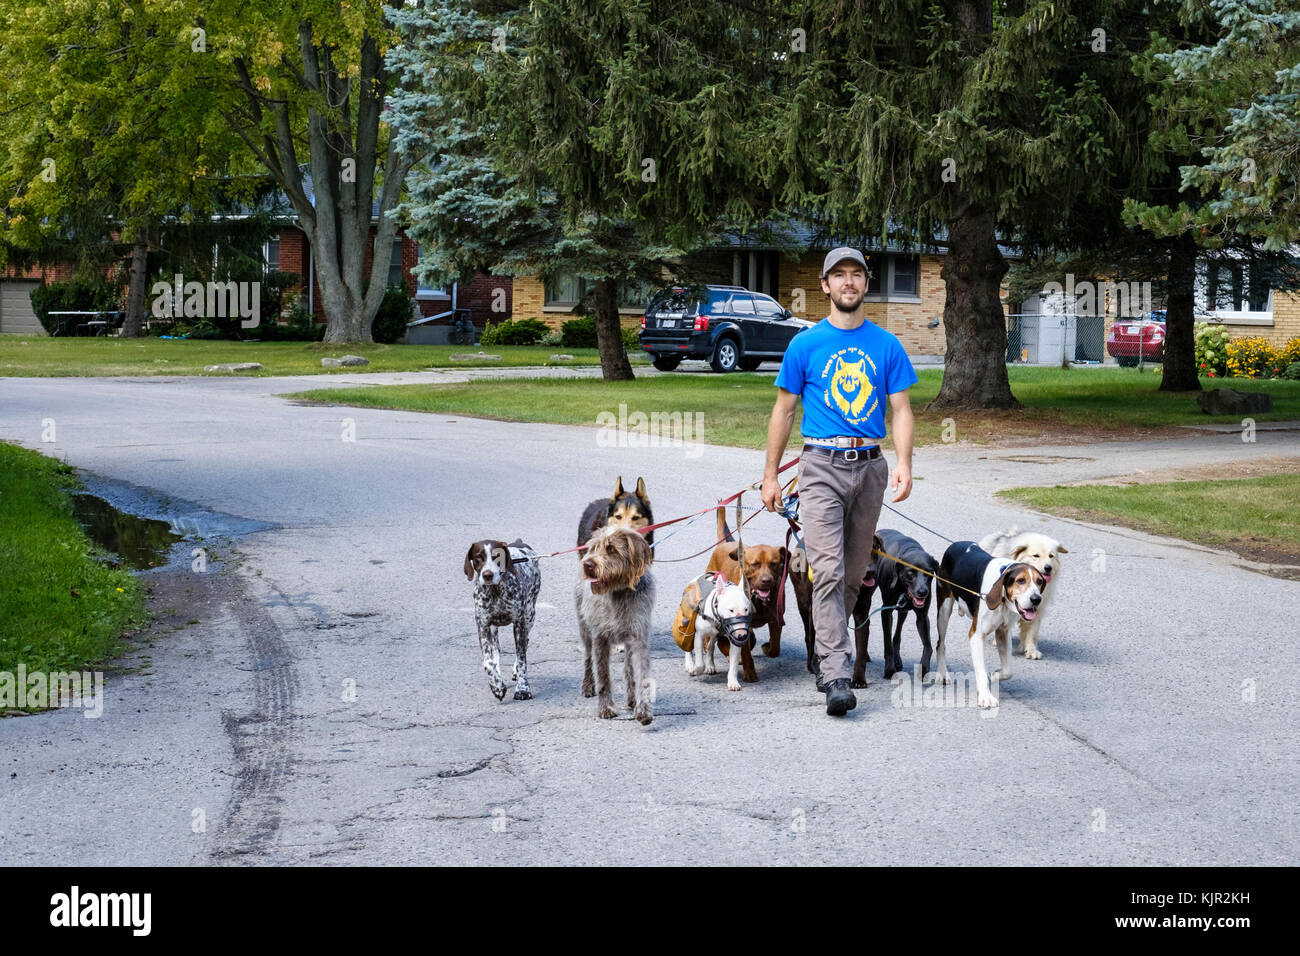 Male professional dog walker in his twenties walking a group of dogs in the street, London, Ontario, Canada. - Stock Image